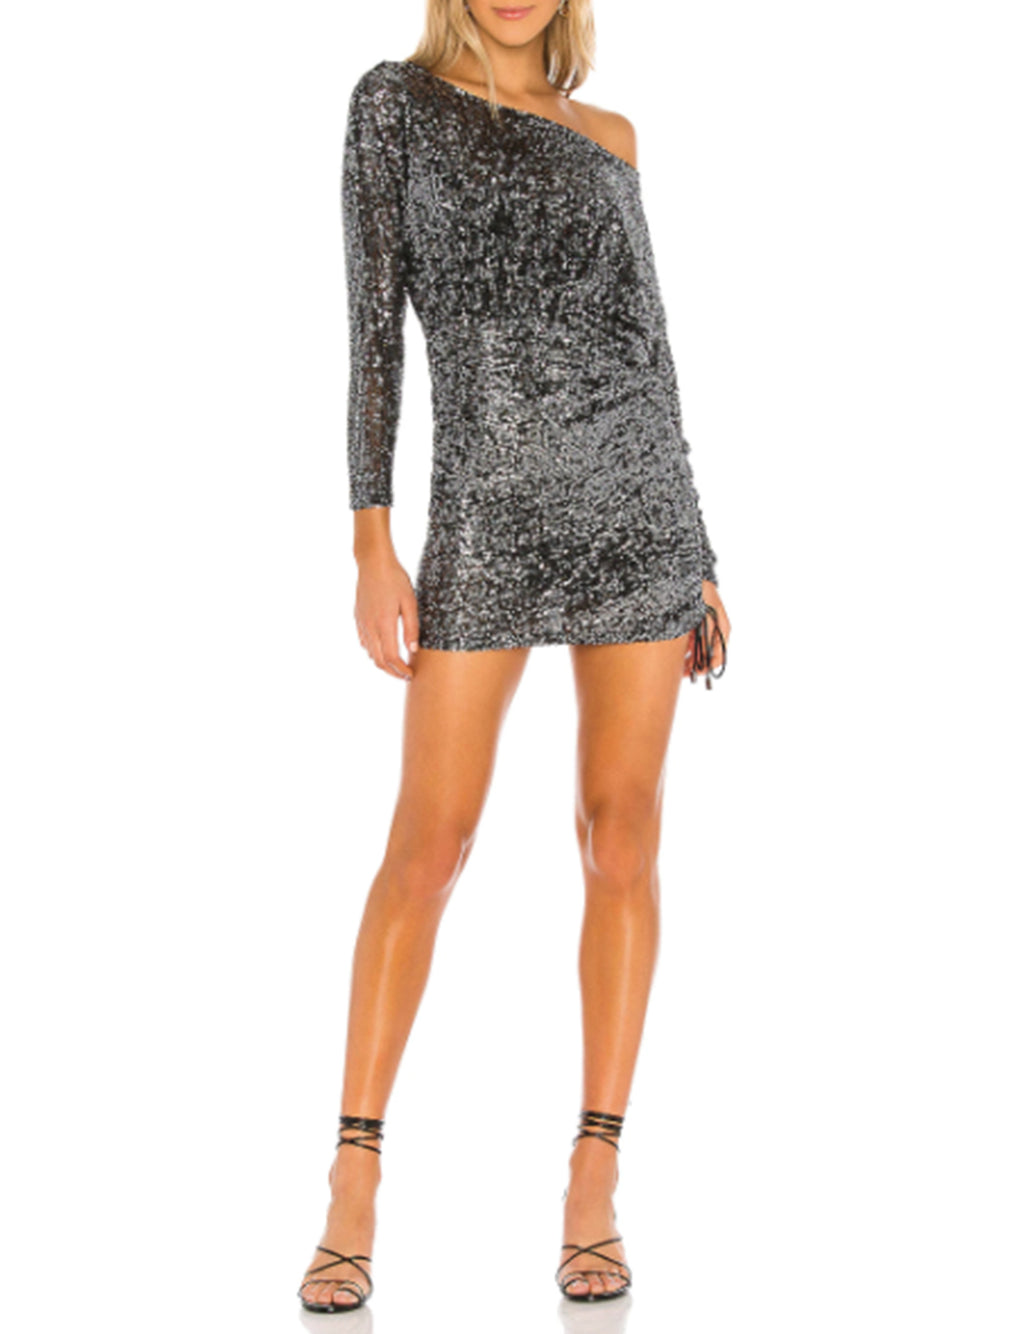 Giselle Mini Dress in Graphite